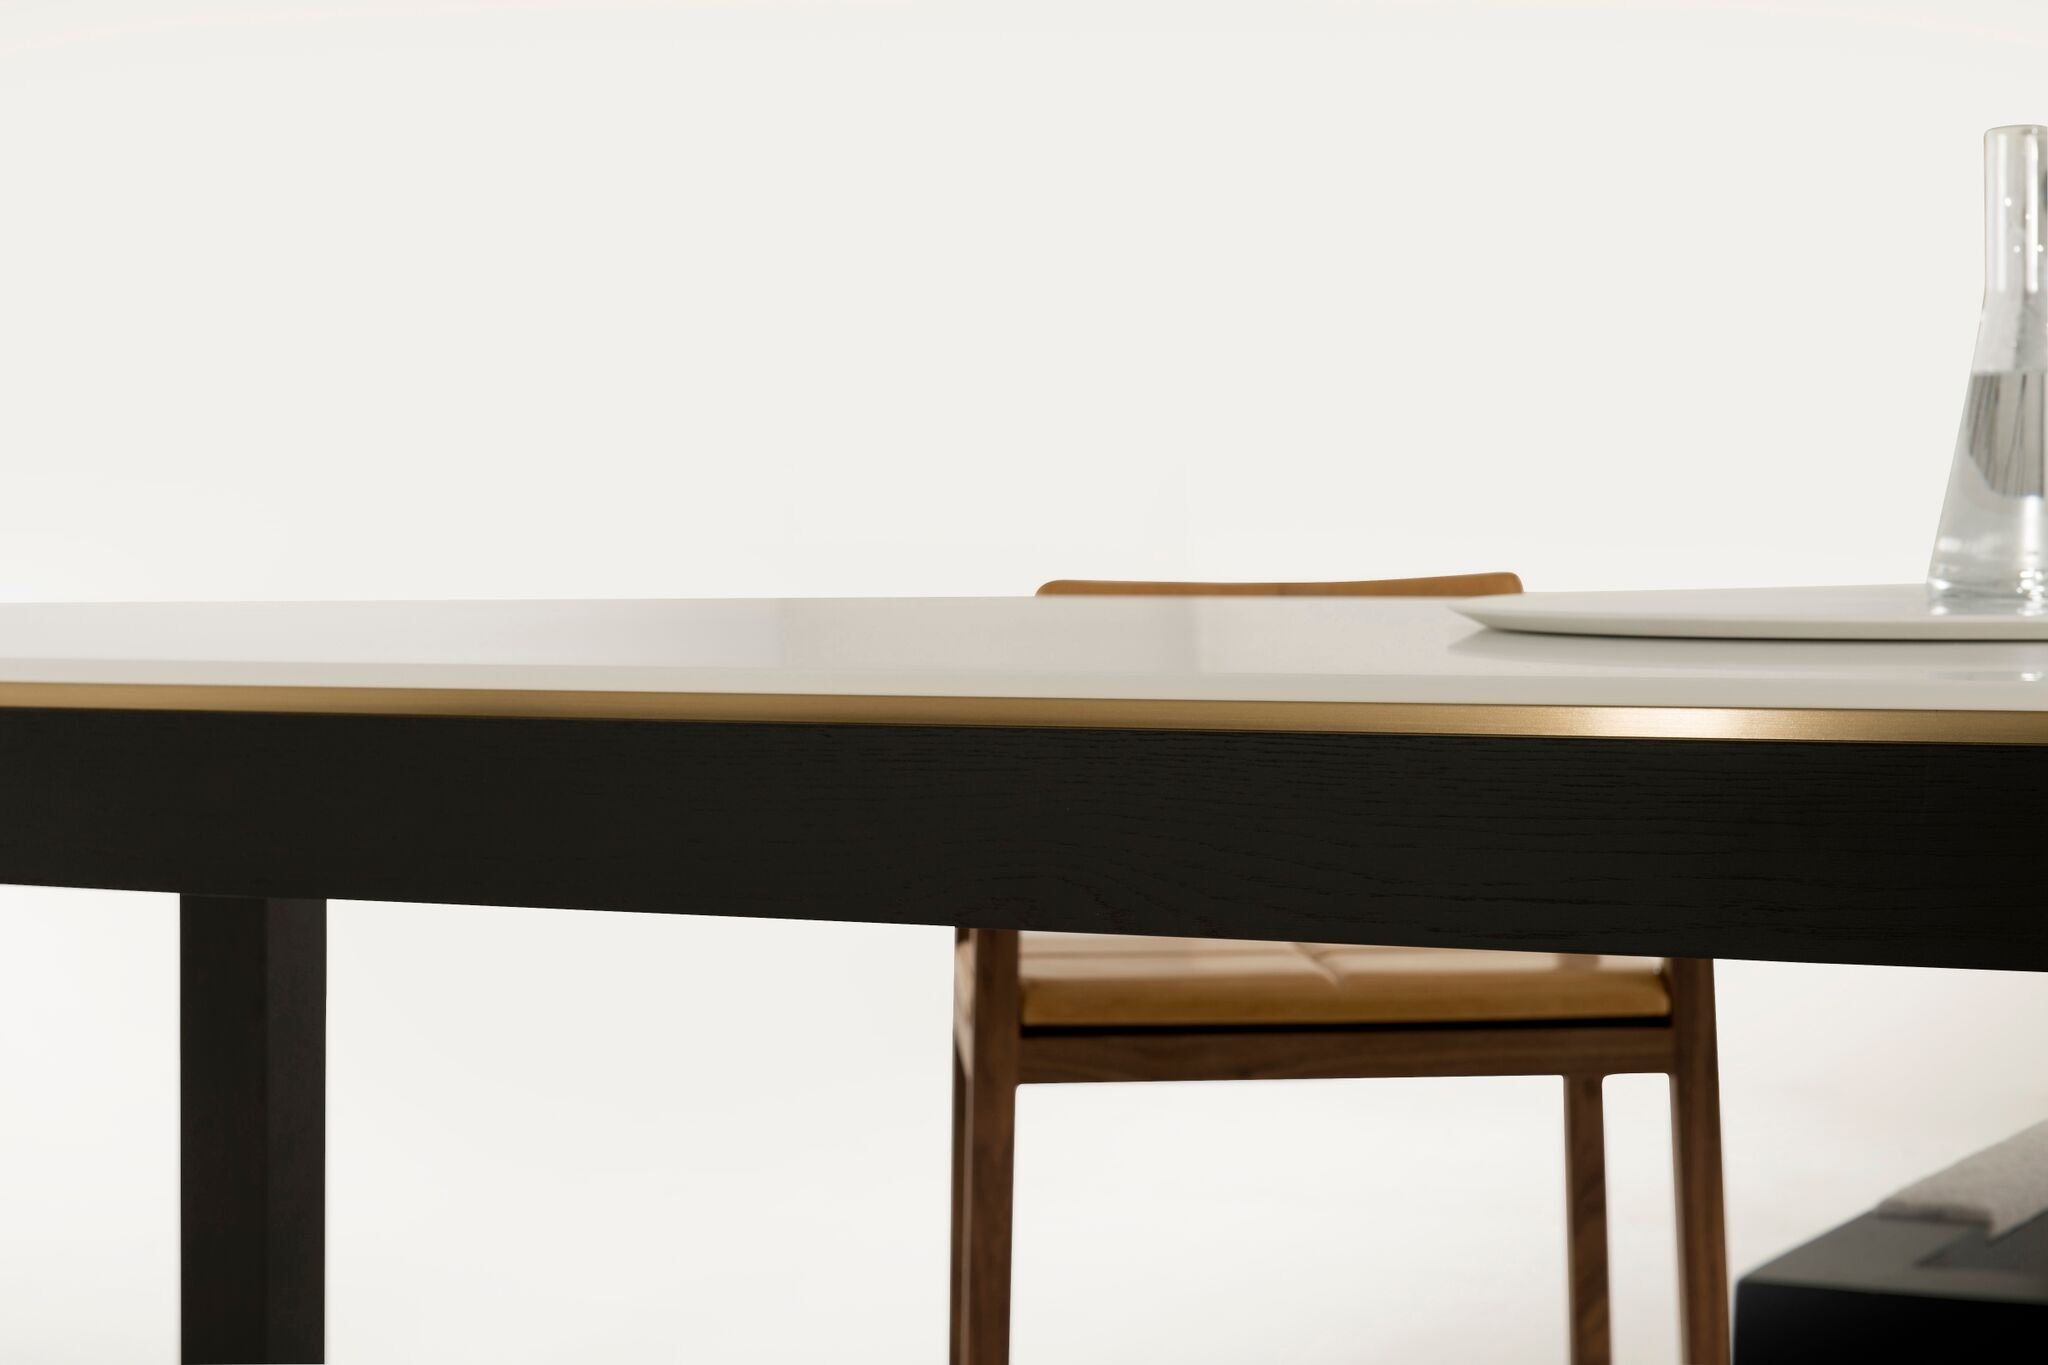 Gallery Of The Mila Table By Fraco Crea Local Australian Furniture Design Melbourne, Vic Image 9